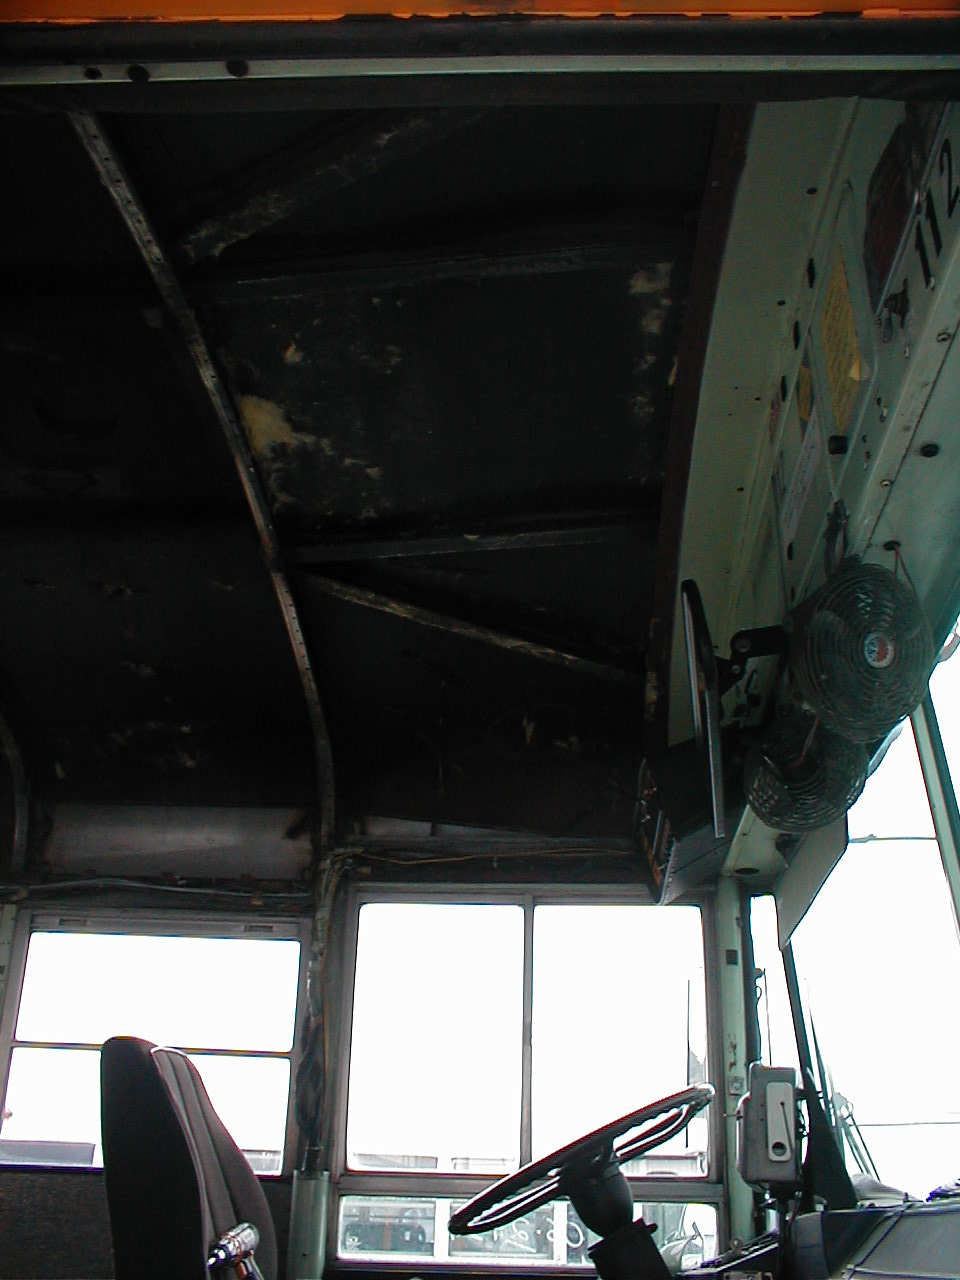 Driver ceiling panel